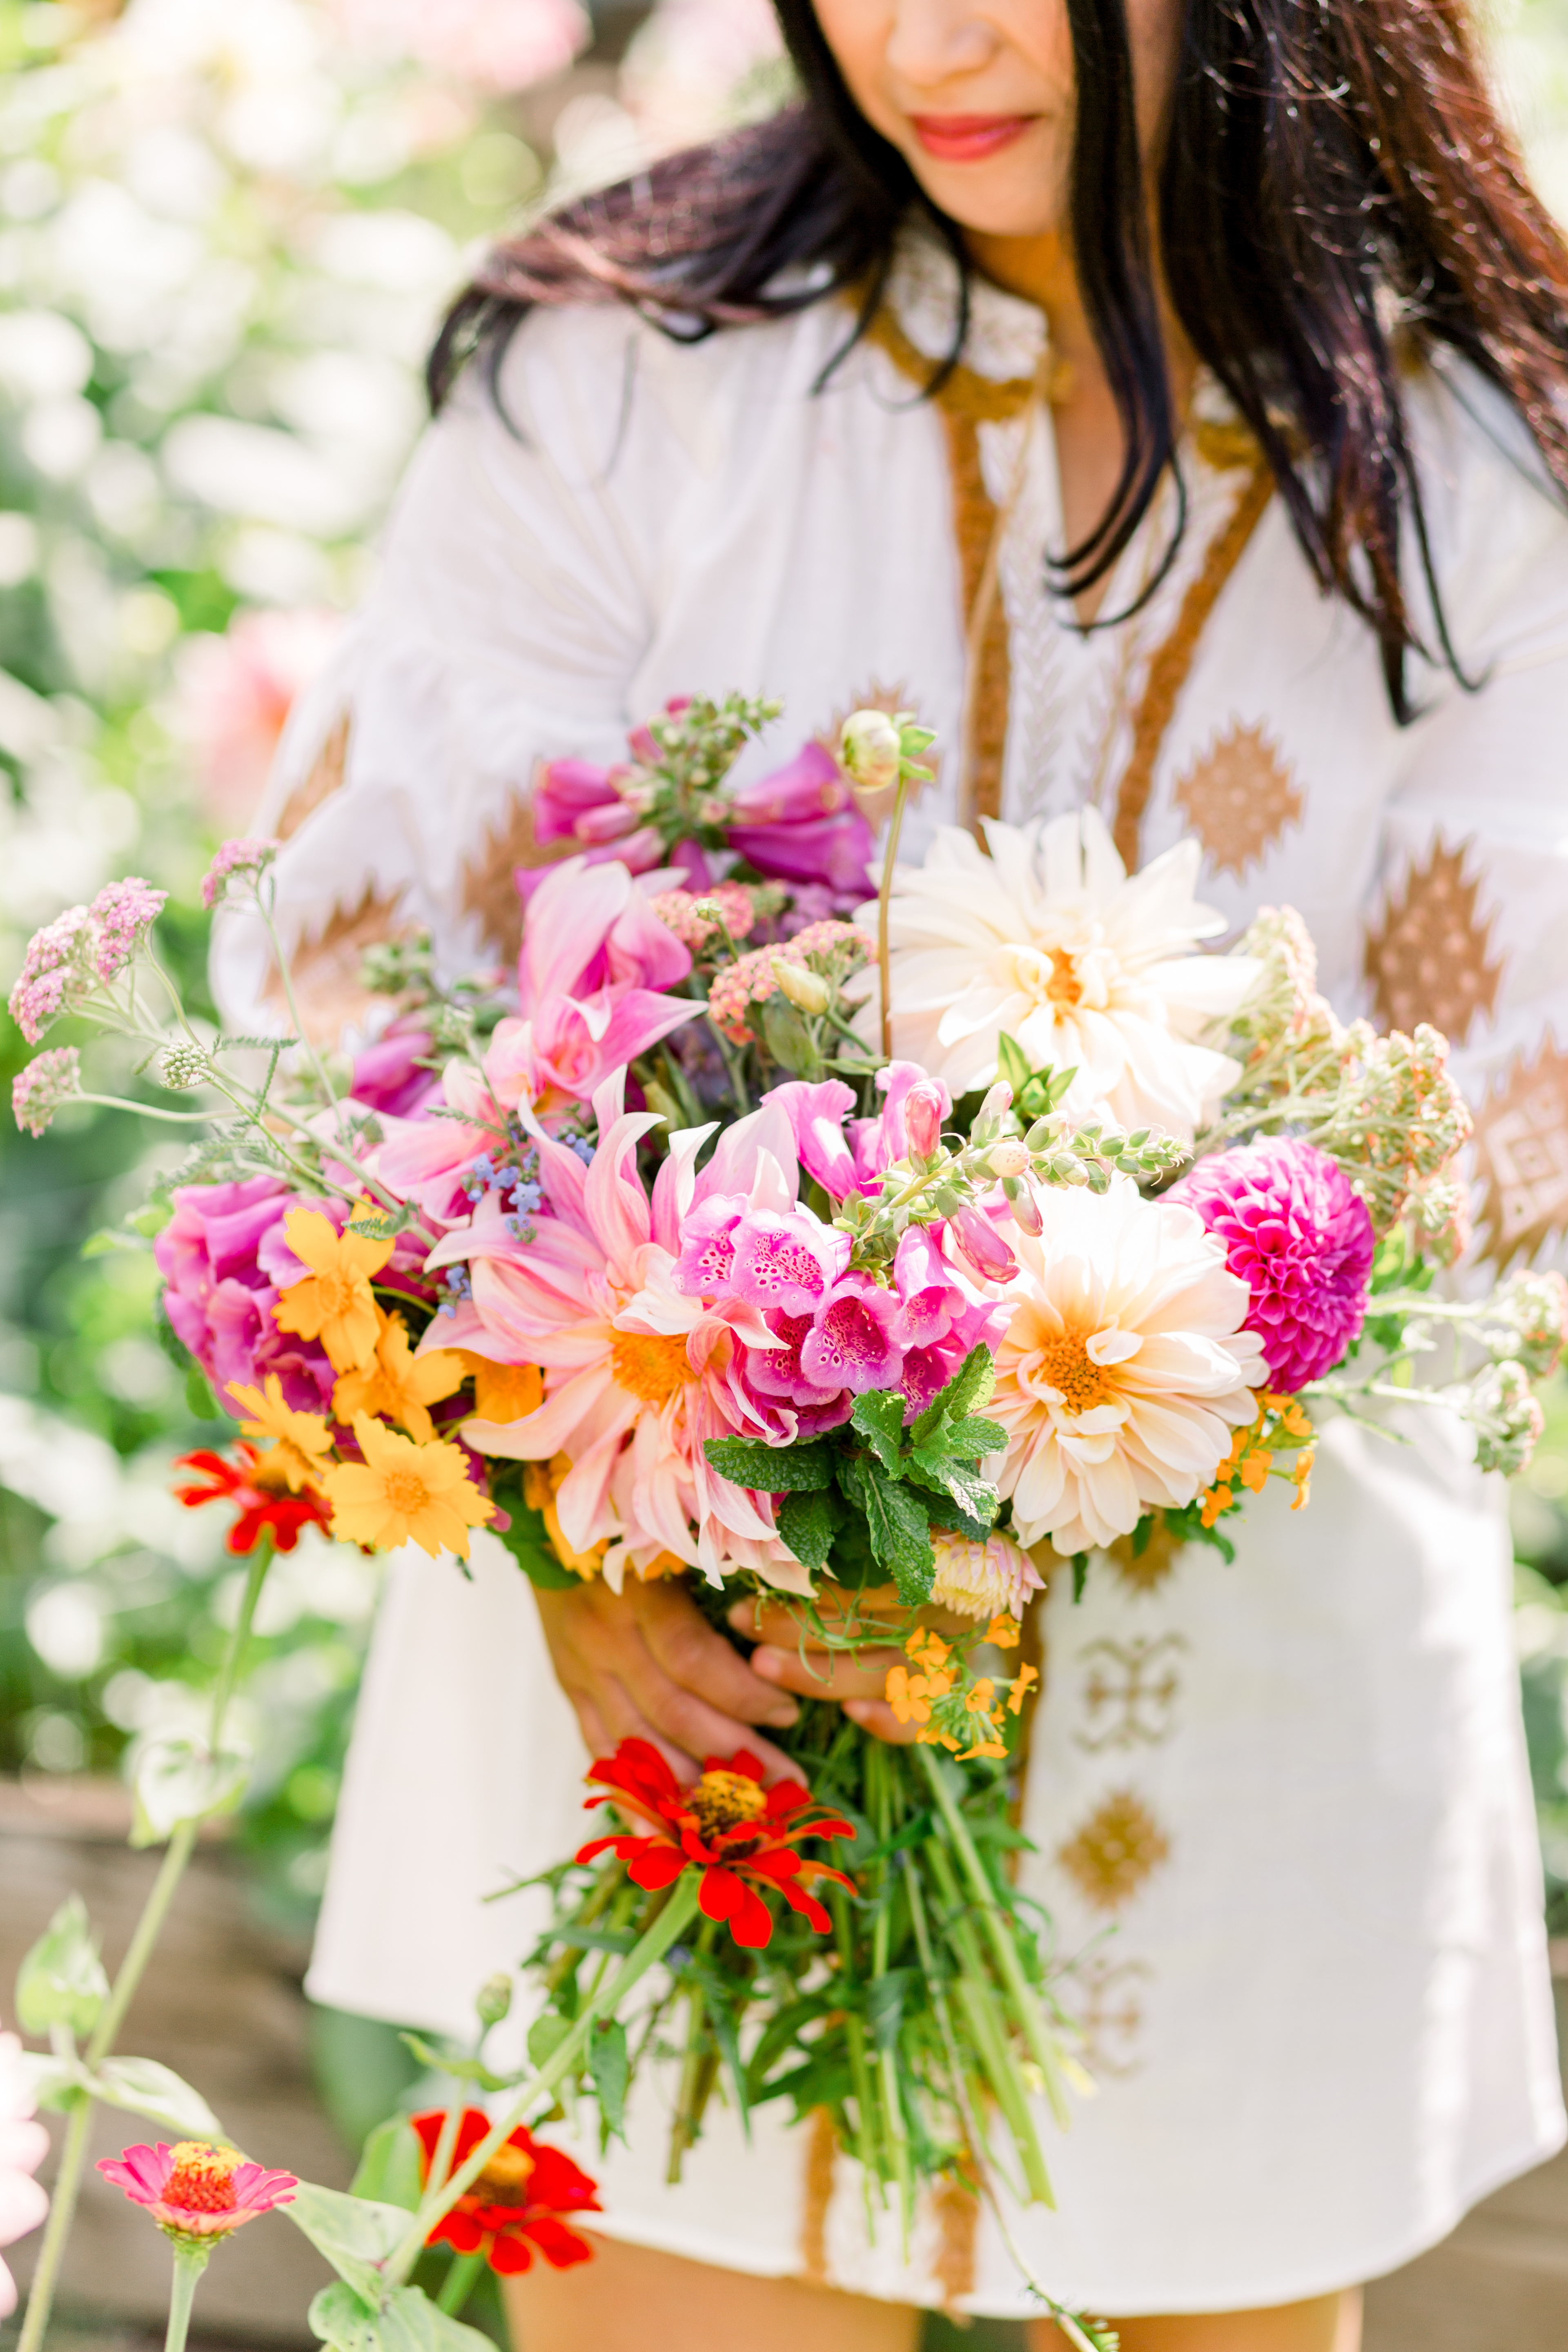 Create a Spring Masterpiece with FarmGal Flowers